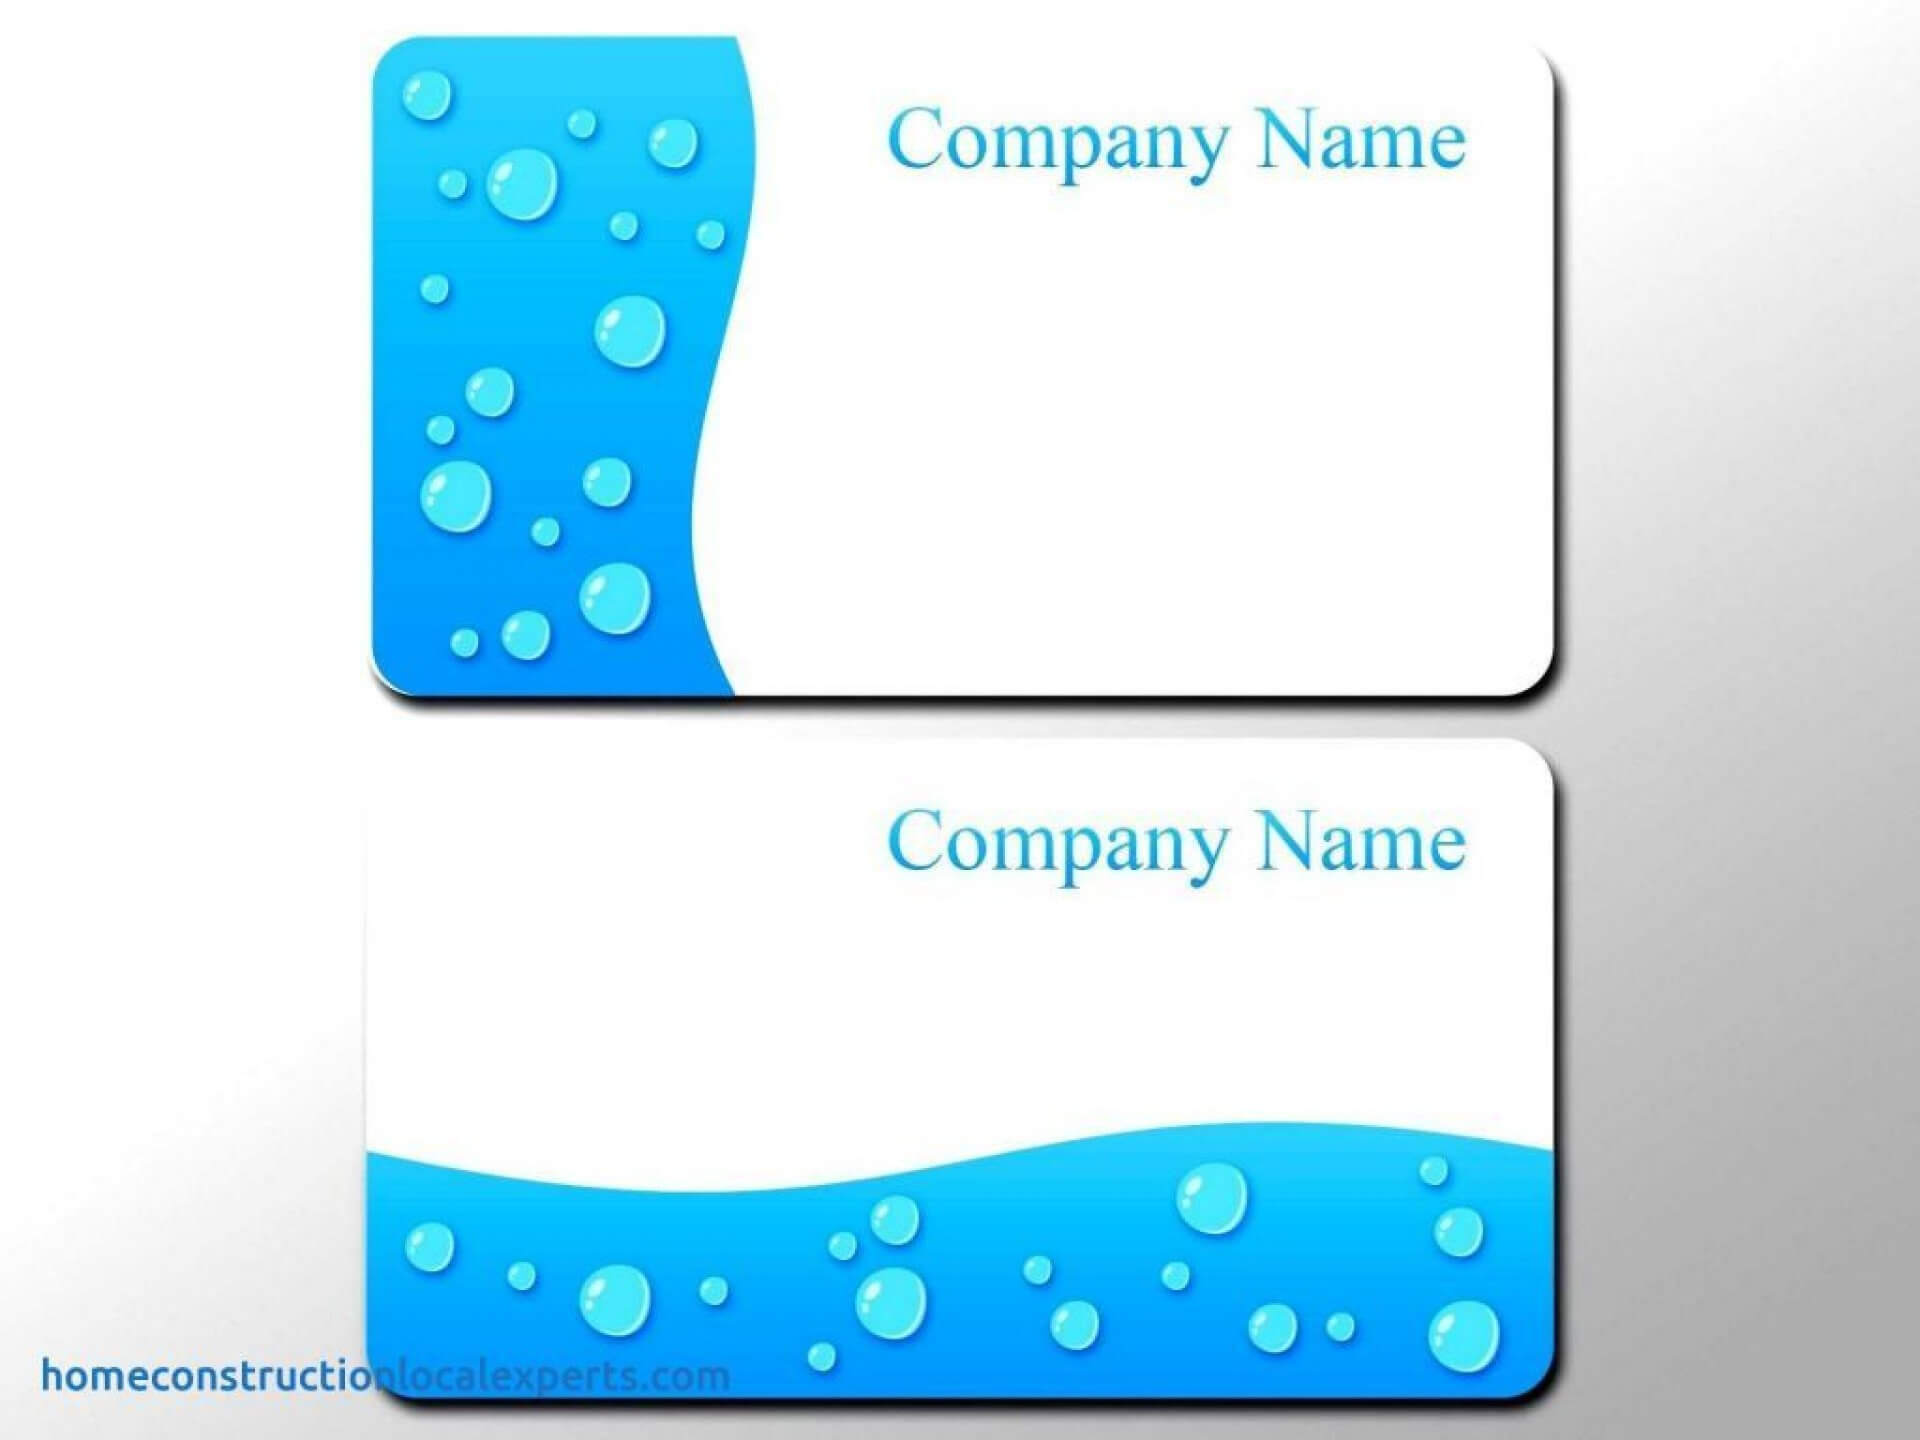 009 Free Blank Business Card Templates Open Office With For Intended For Business Card Template Open Office